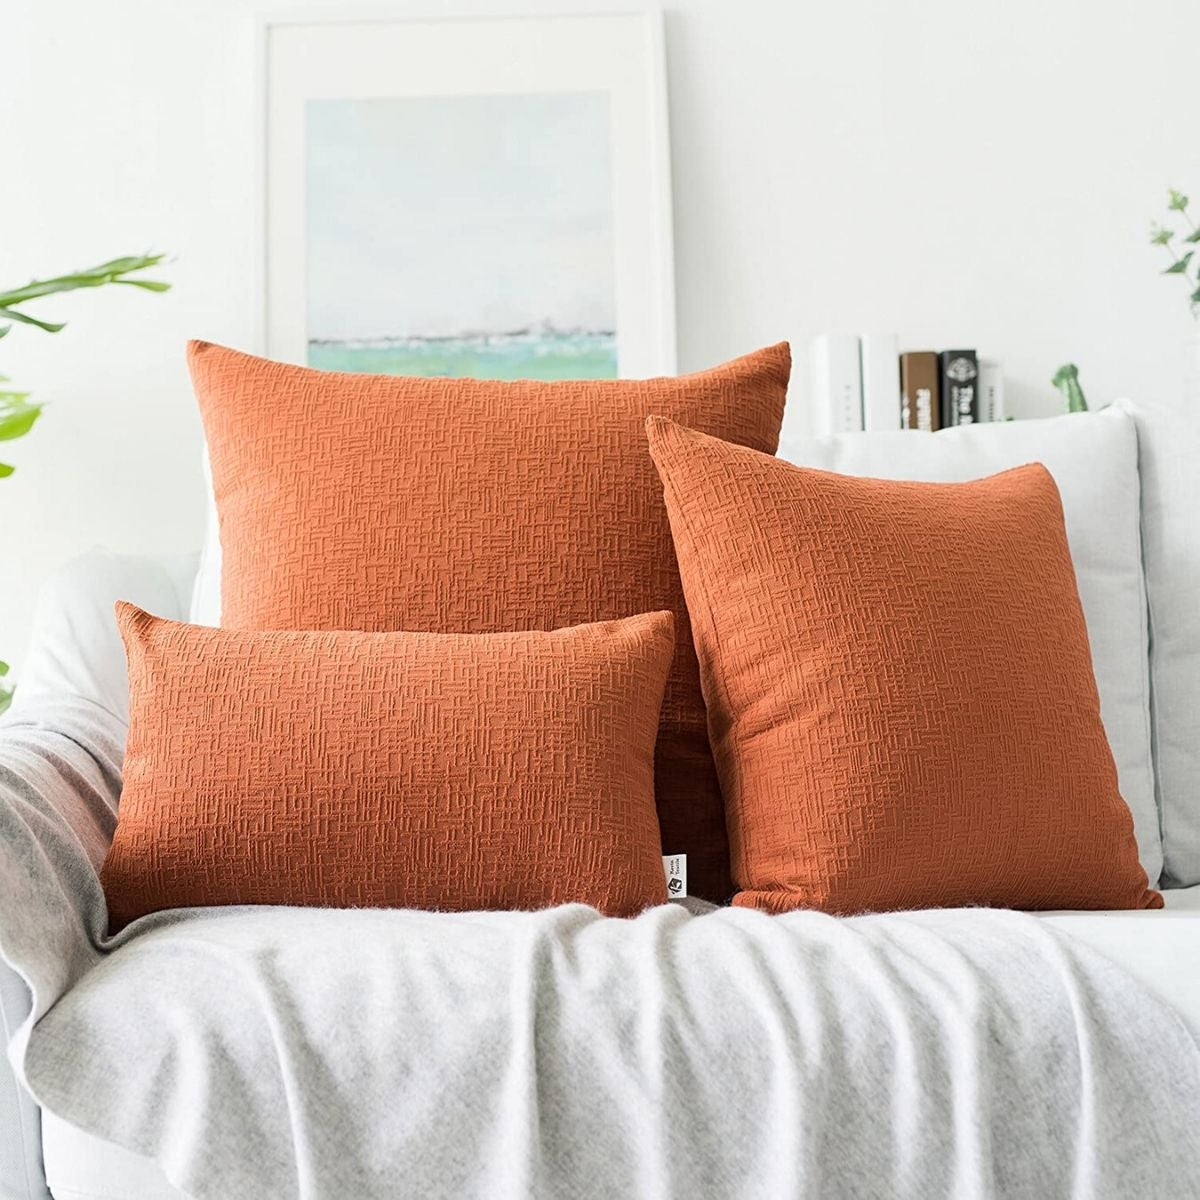 Image of: The Best Throw Pillows For The Home Bob Vila